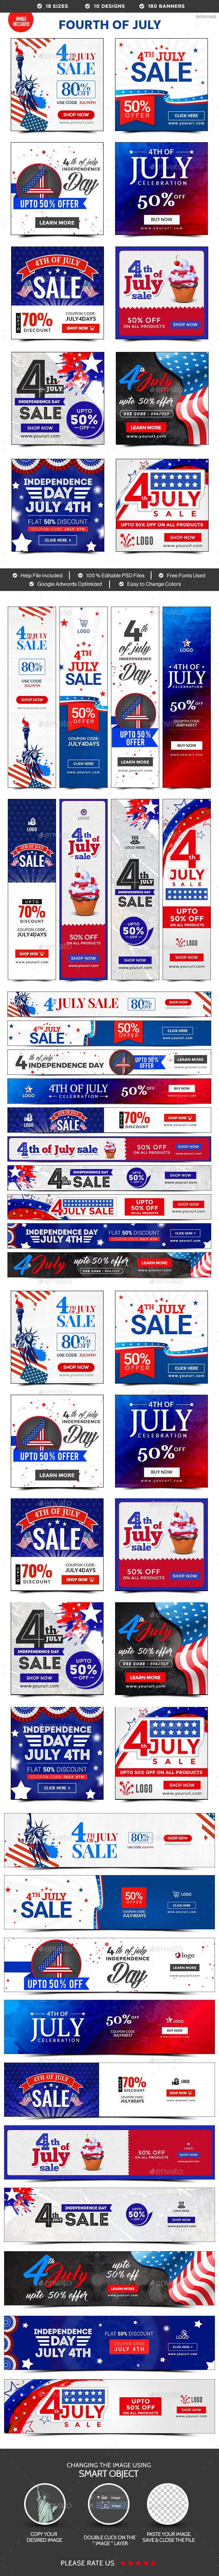 Fouth of July Sale Banners Bundle  10 Sets  180 Banners — Photoshop PSD #flat design #adroll • Available here → https://graphicriver.net/item/fouth-of-july-sale-banners-bundle-10-sets-180-banners/20236568?ref=pxcr